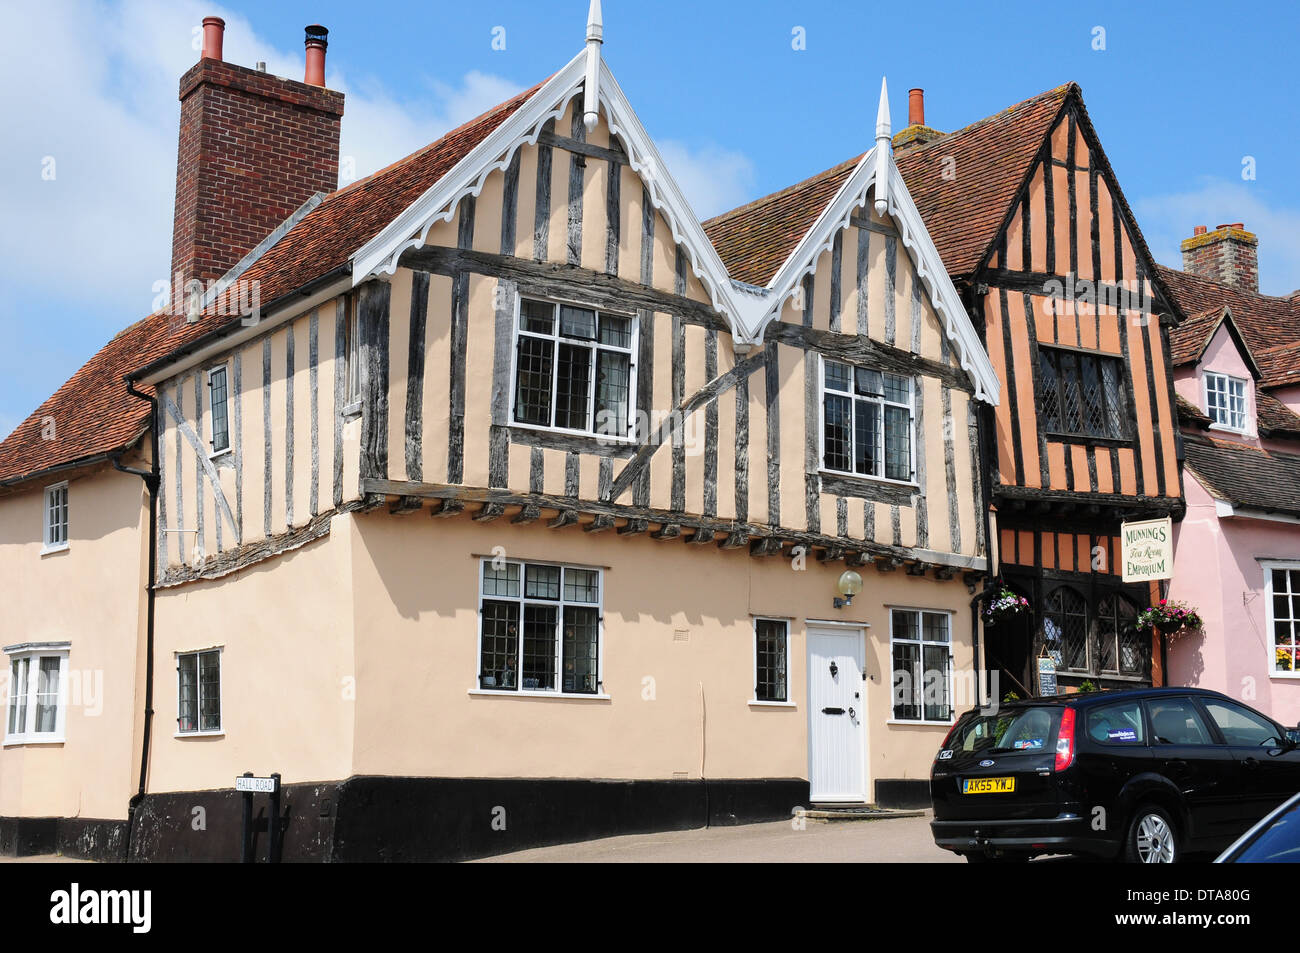 Medieval timberframed houses and 21st century cars in the High Street, Lavenham. - Stock Image